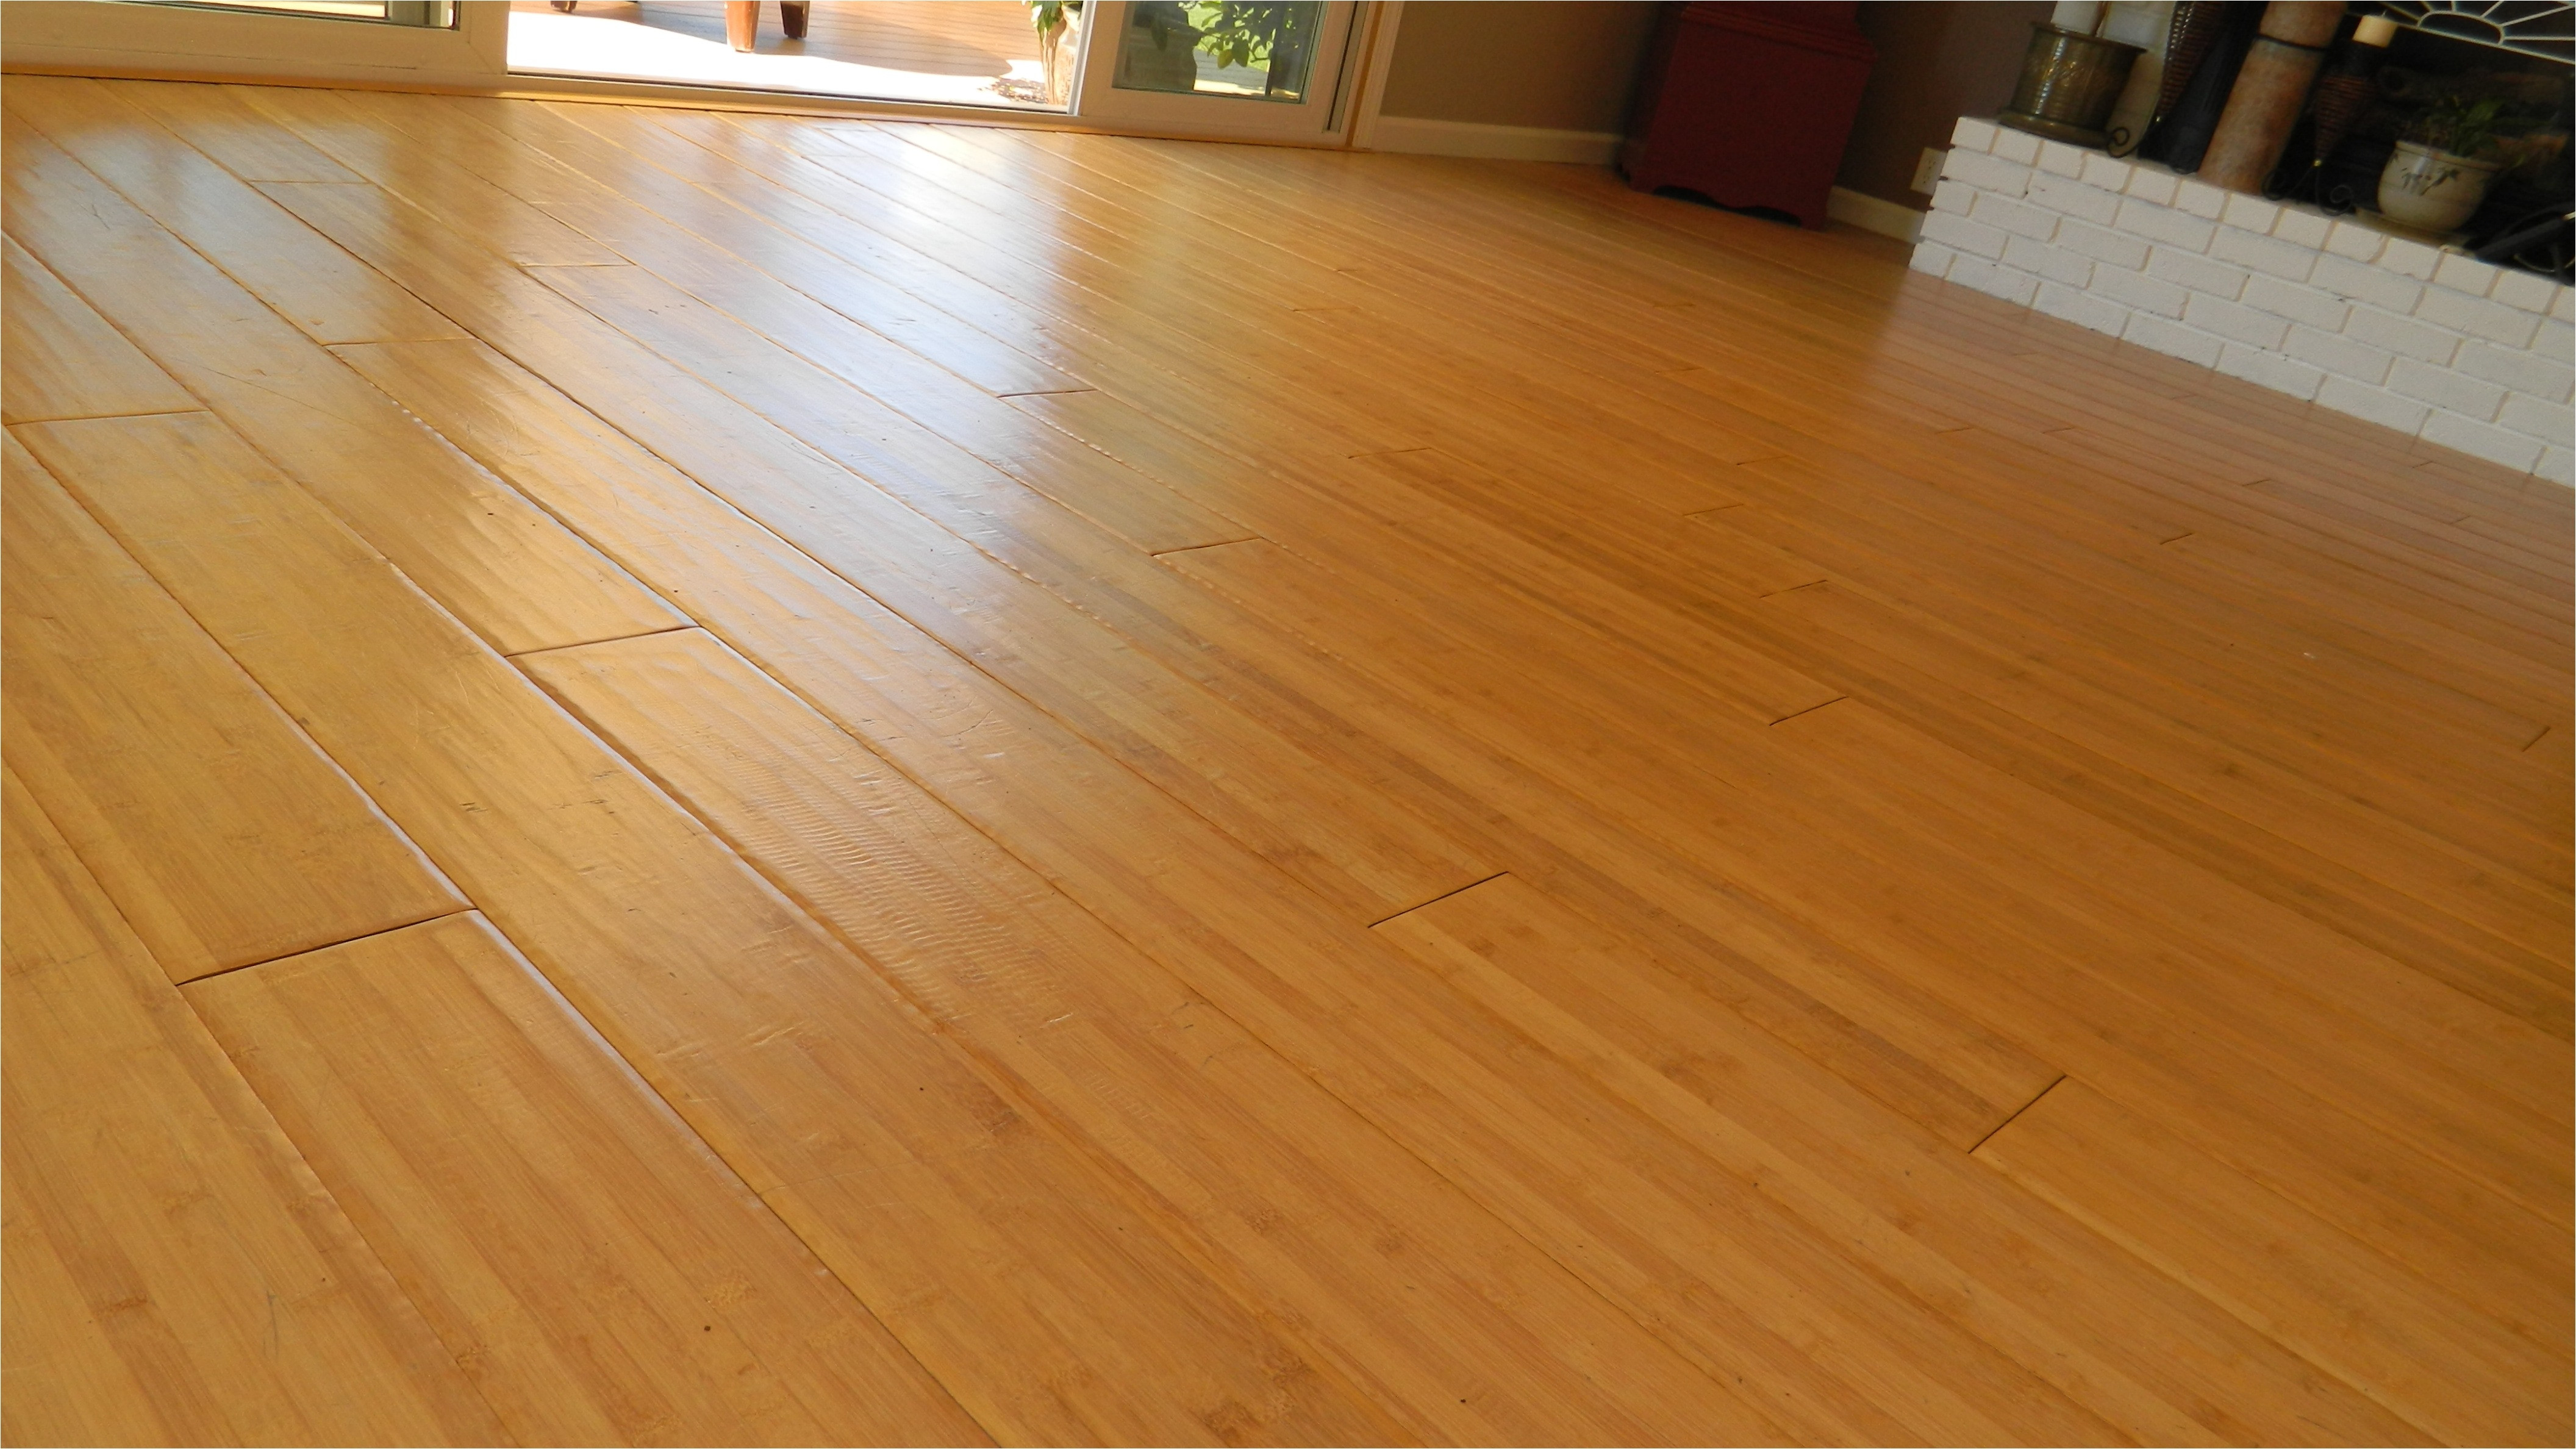 staining unfinished hardwood floors of 37 best unfinished bamboo floor stock flooring design ideas with unfinished bamboo floor beautiful shark steam mop engineered hardwood floors pics of 37 best unfinished bamboo